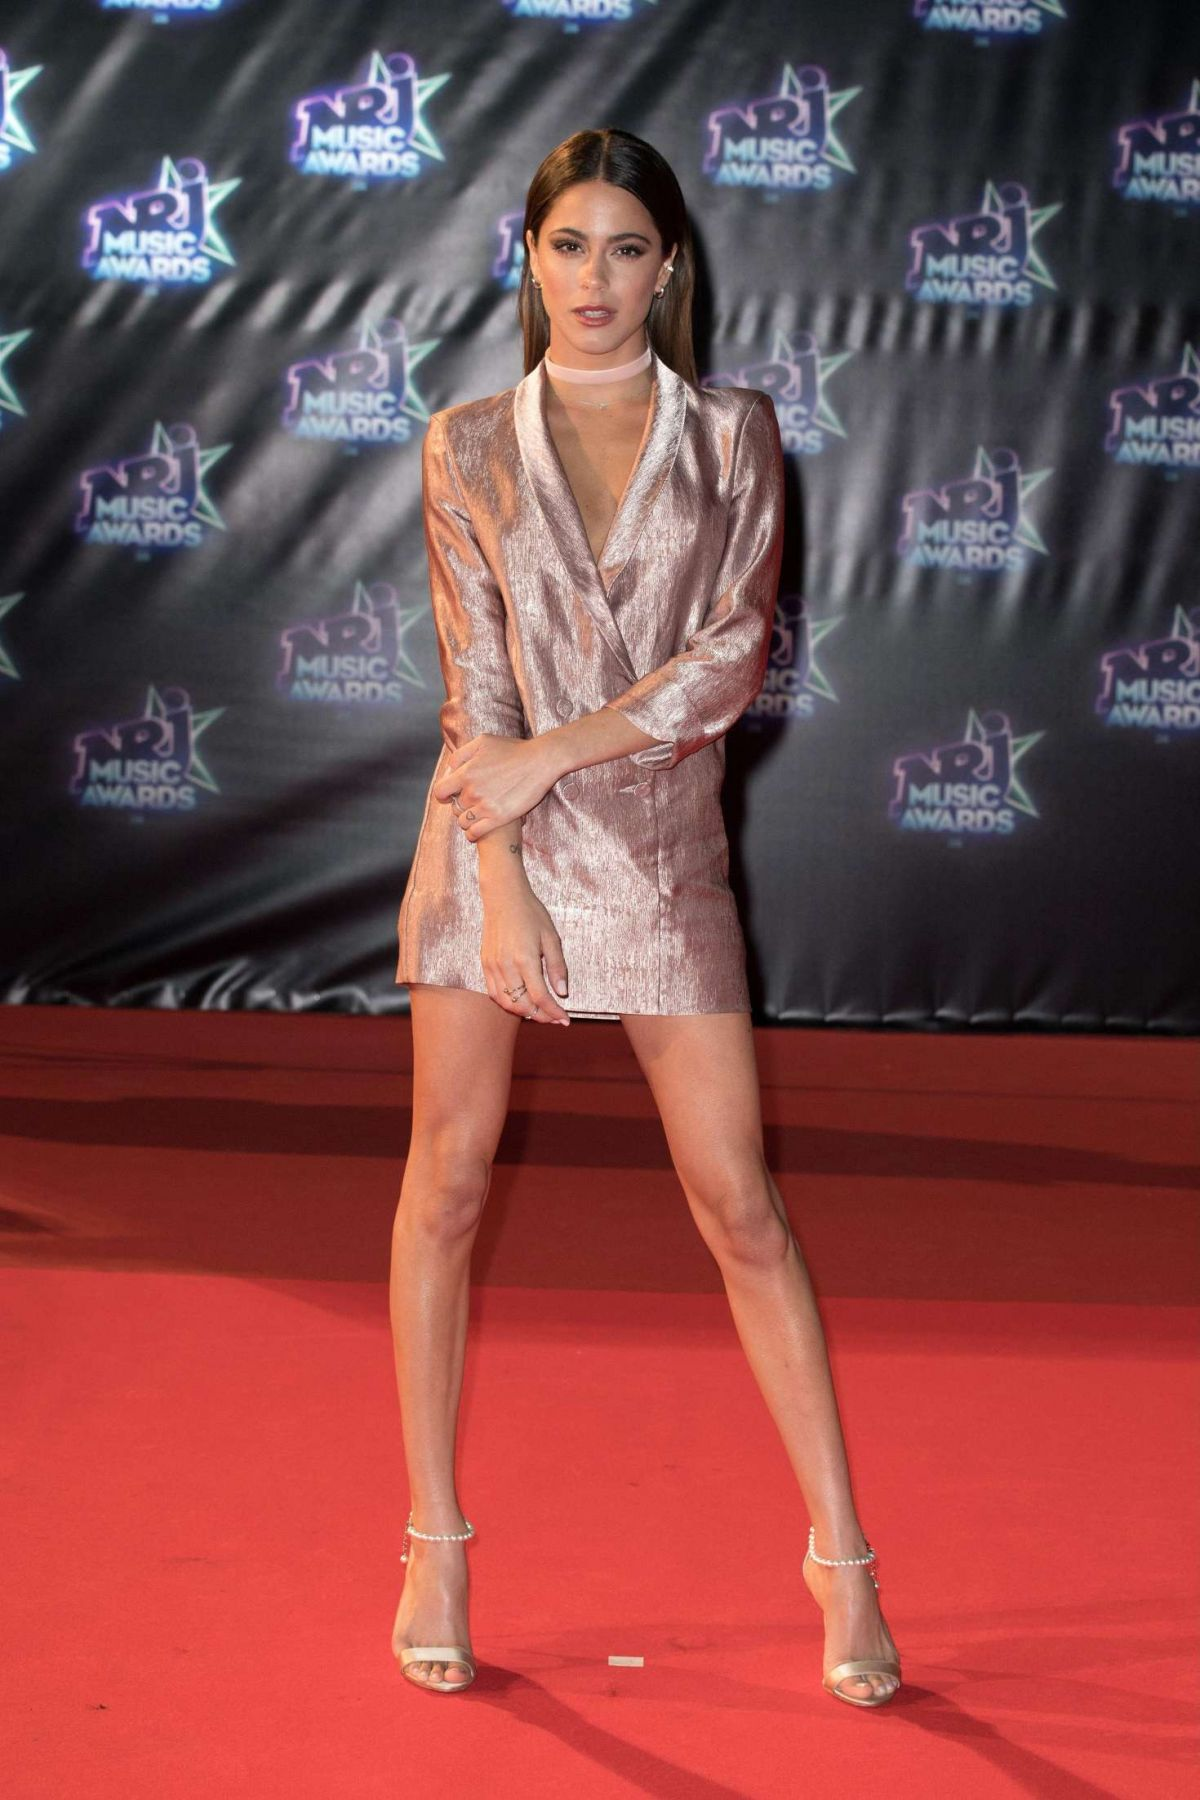 Martina Stoessel At NRJ Music Awards 2016 in Cannes